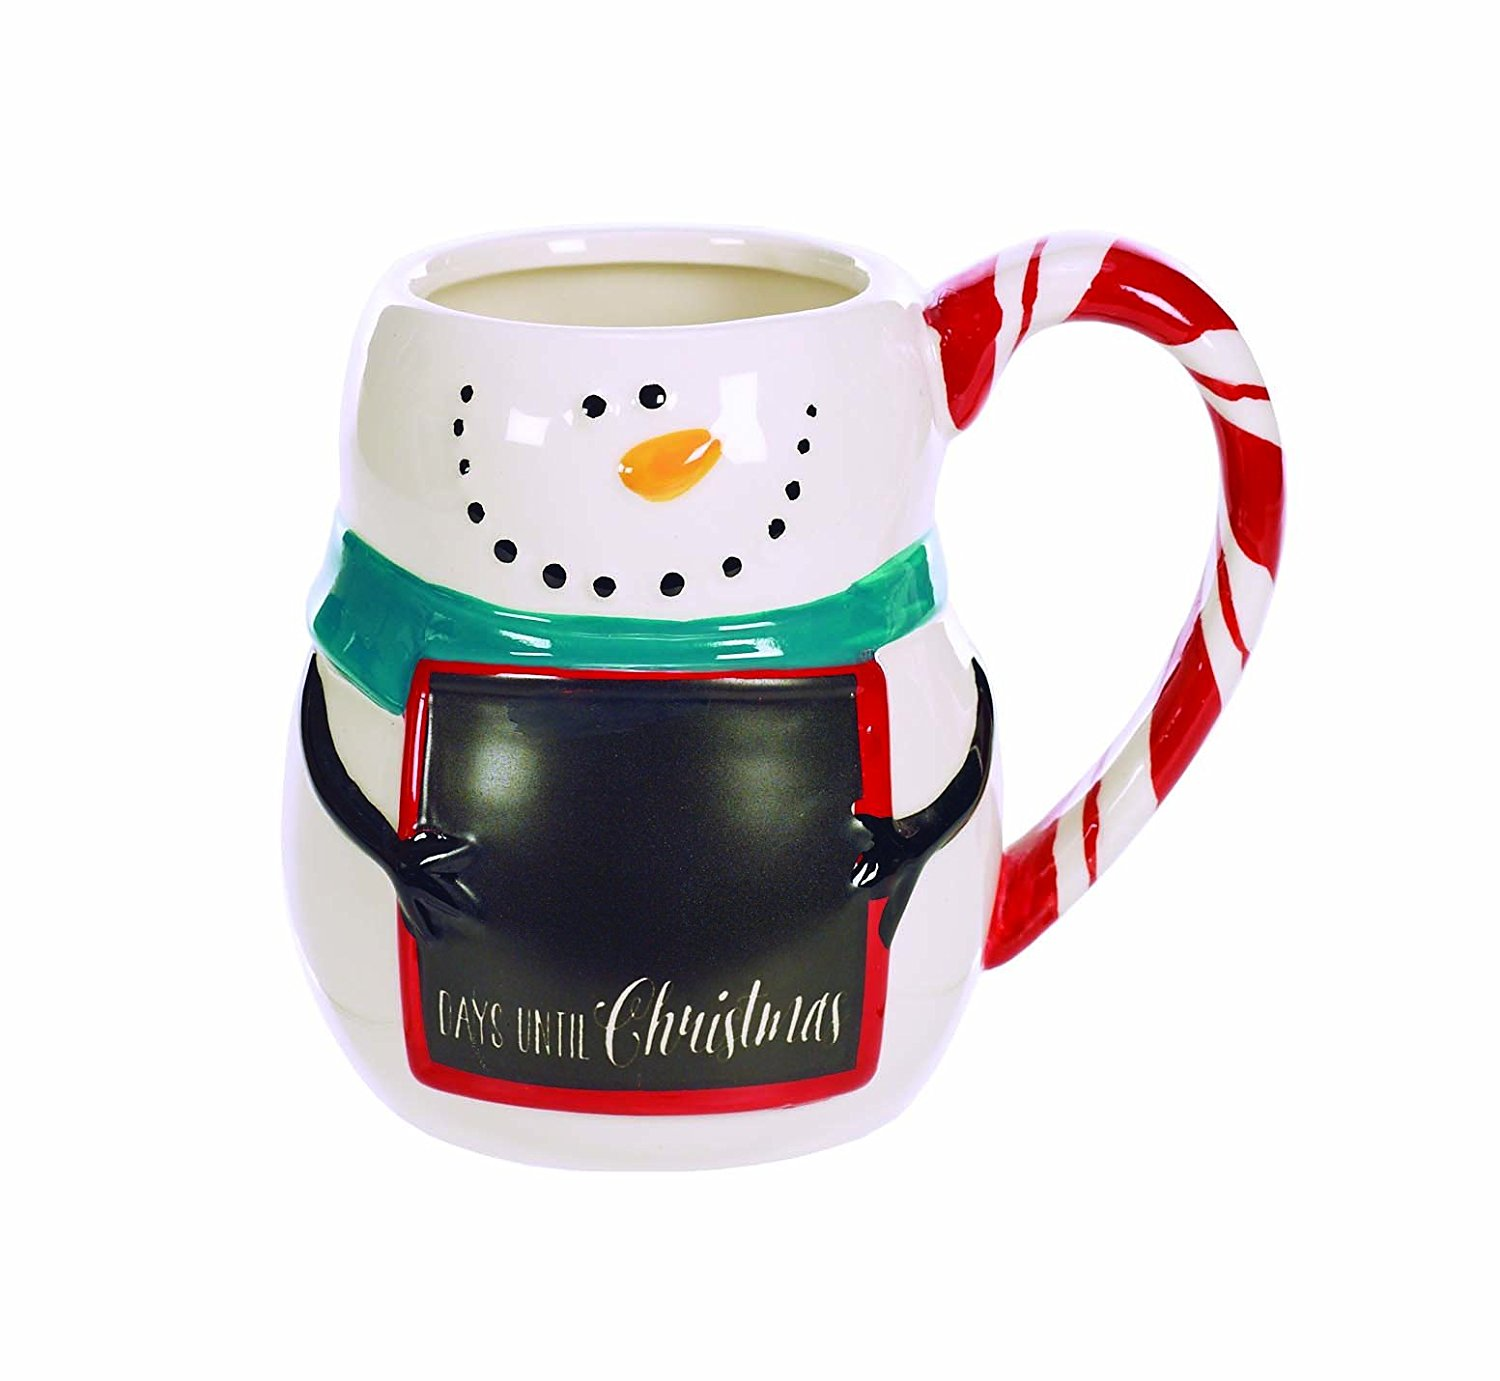 Christmas coffee mugs gift exchange ideas for your Top 10 coffee mugs